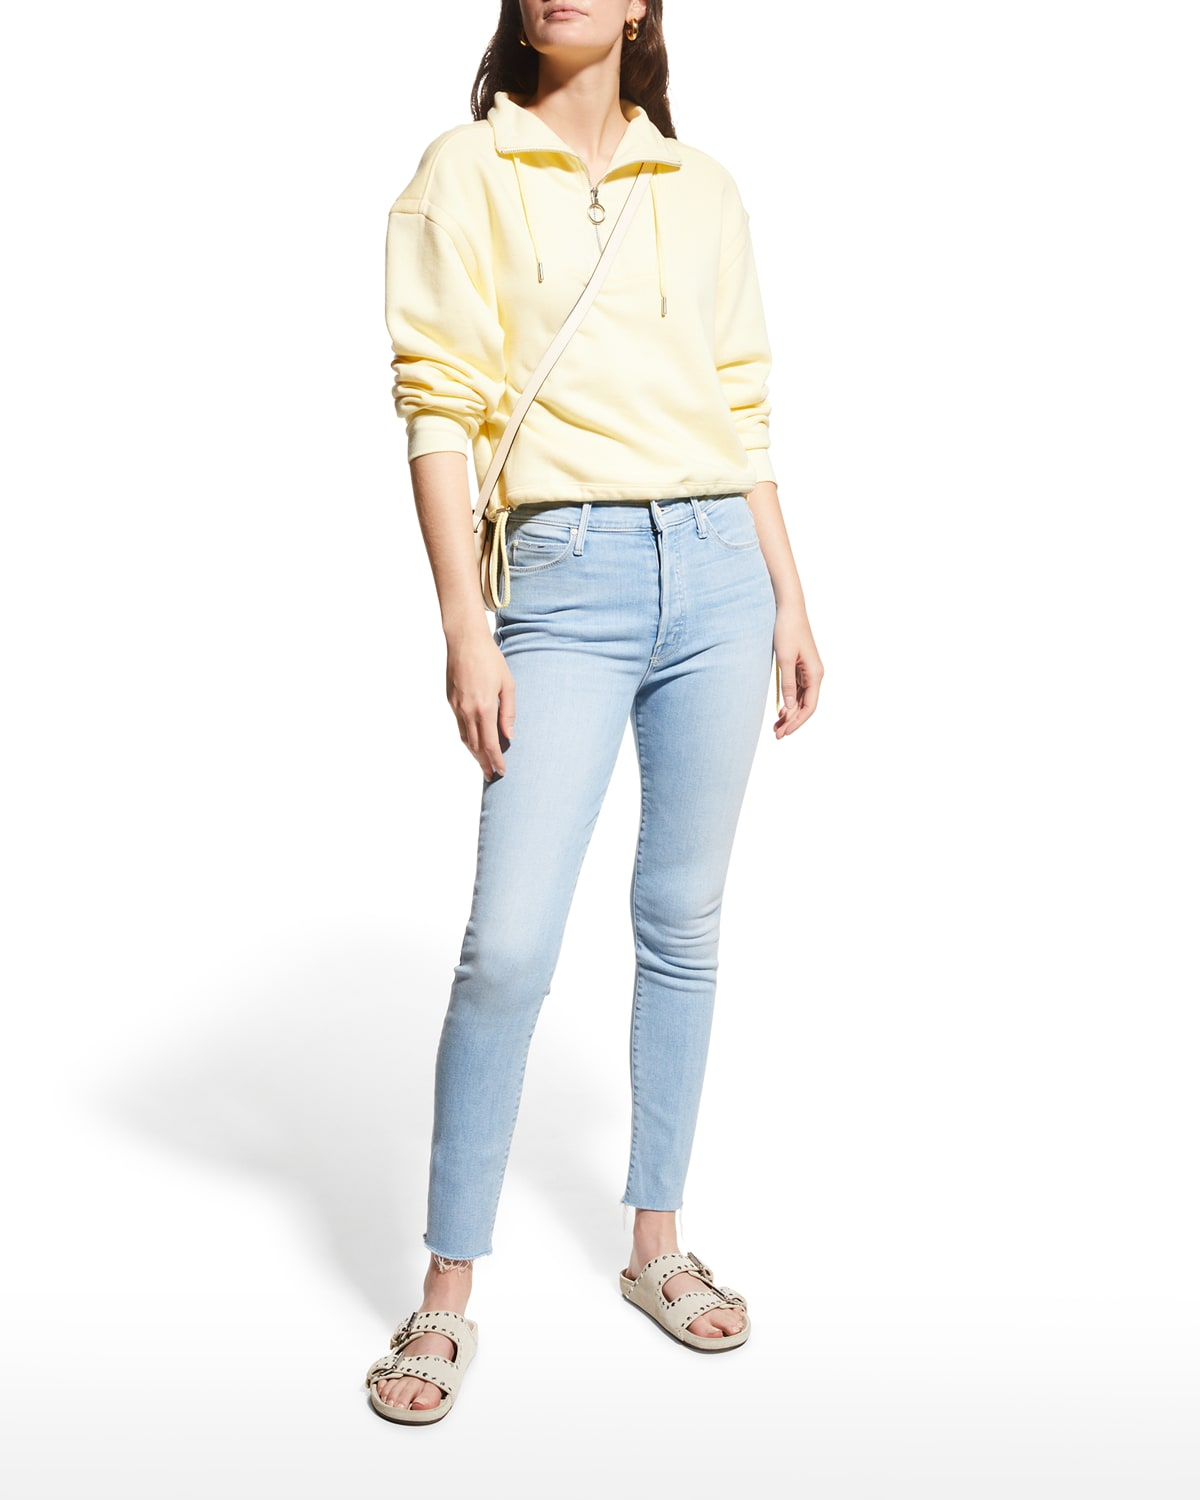 The Stunner Ankle Fray Skinny Jeans